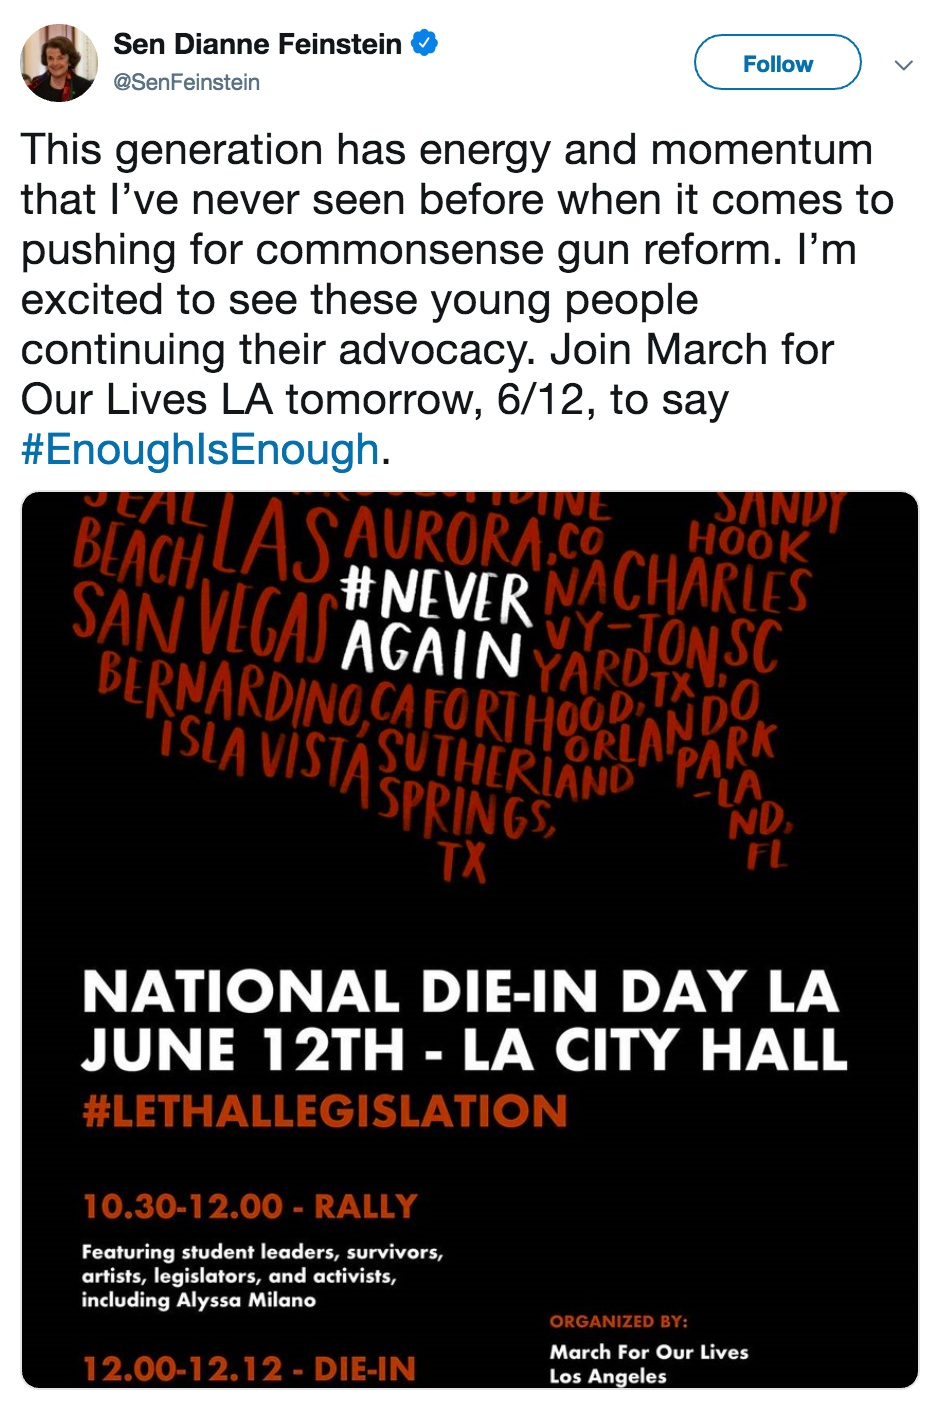 Sen. Feinstein shared her support for the die-in by retweeting the event poster.